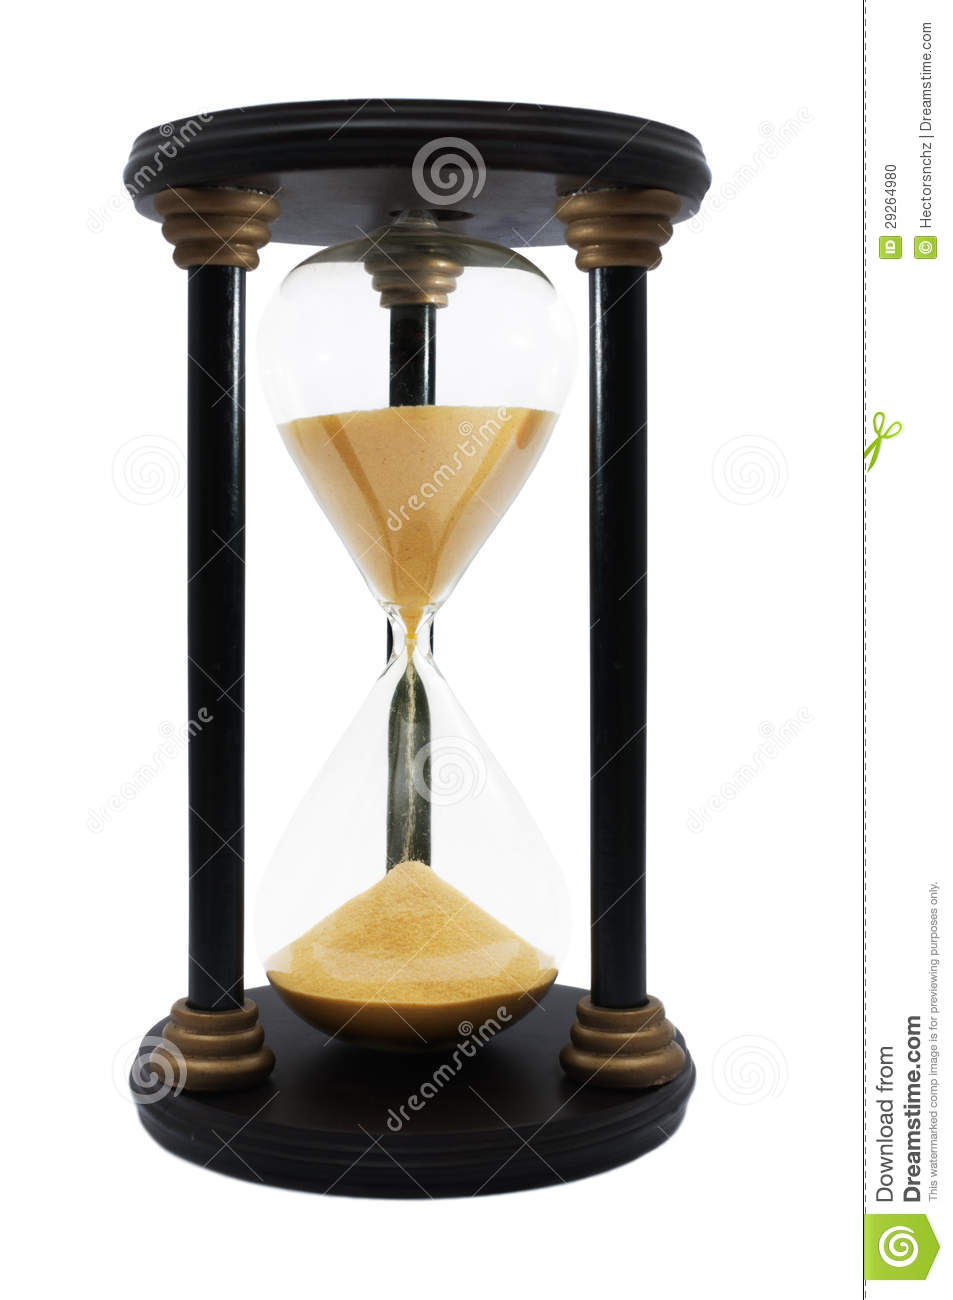 Vintage Hourglass Stock Photo Image 29264980